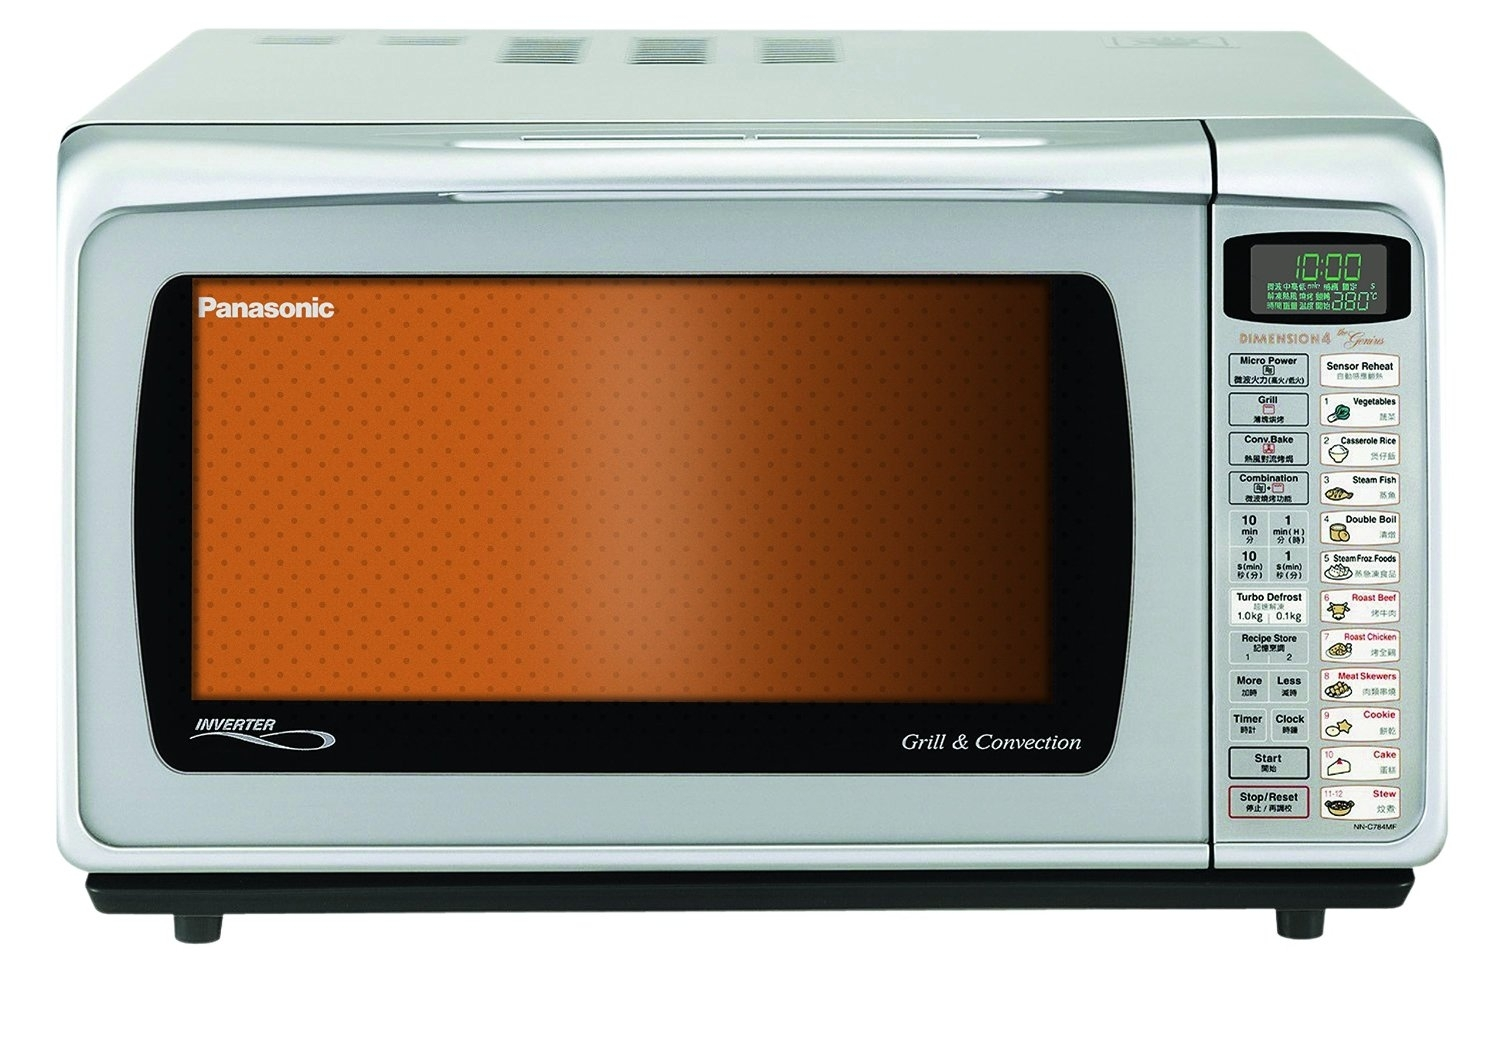 Panasonic Convection Microwave Oven Nn C784mf Image Write Your Review